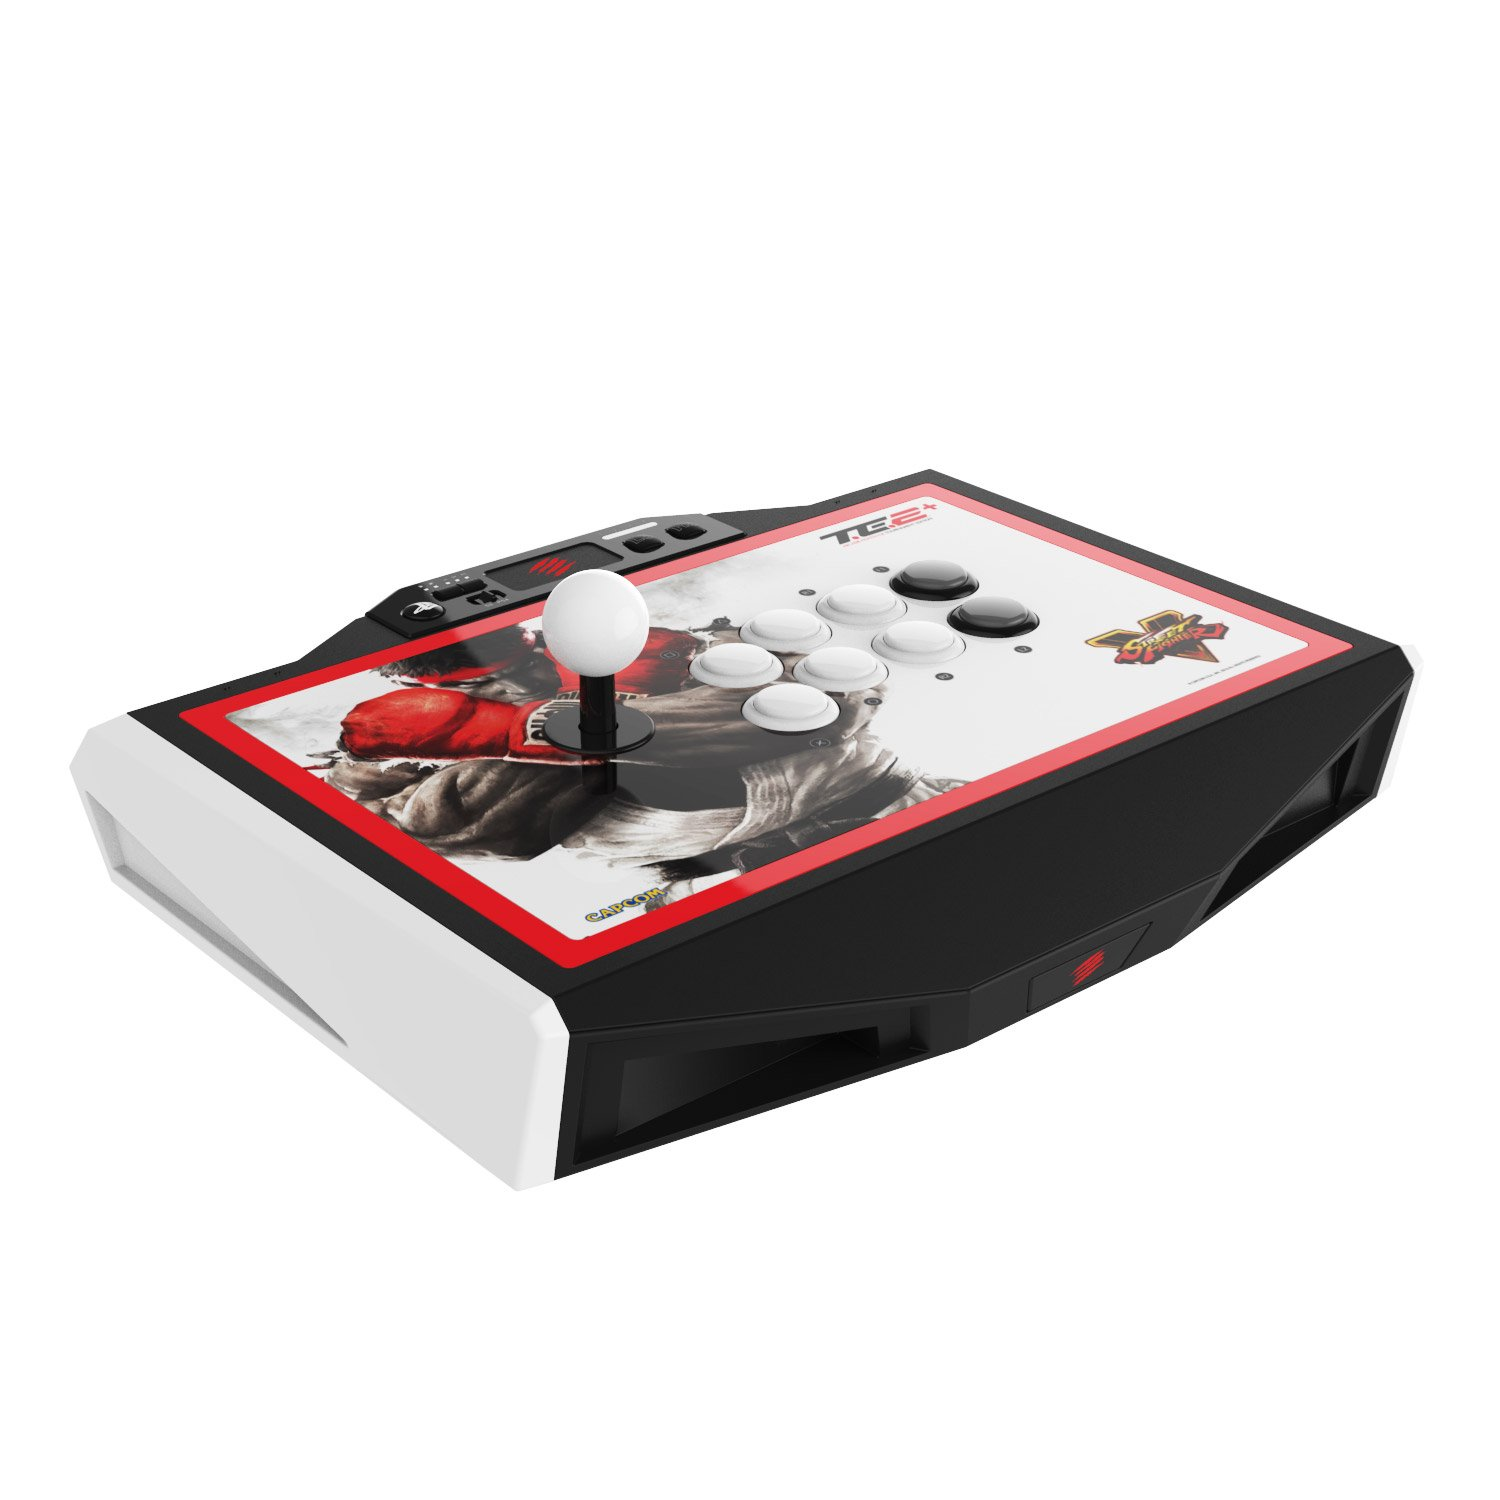 Mad Catz Street Fighter V Arcade FightStick TE2+ for PlayStation4 and PlayStation3